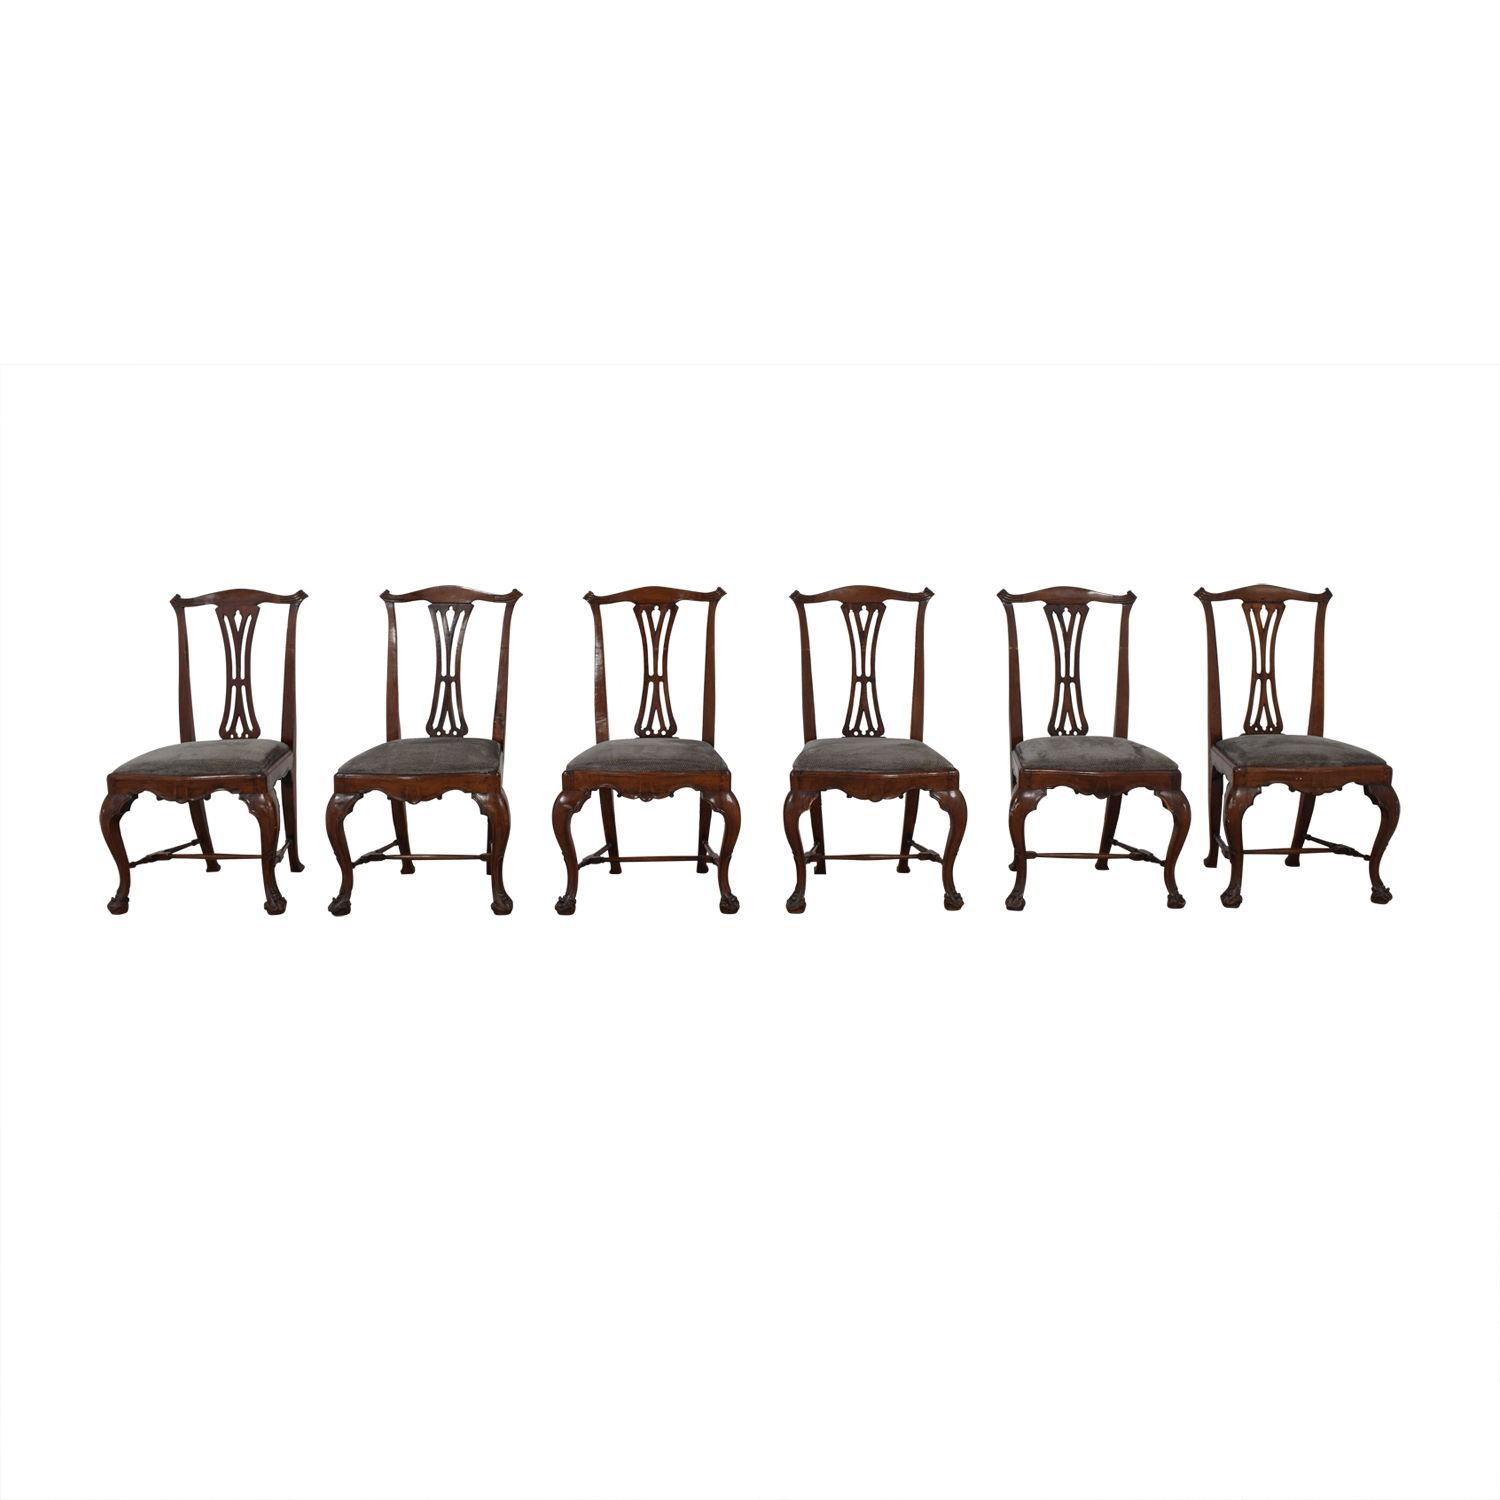 Vintage Dining Chair Set / Chairs